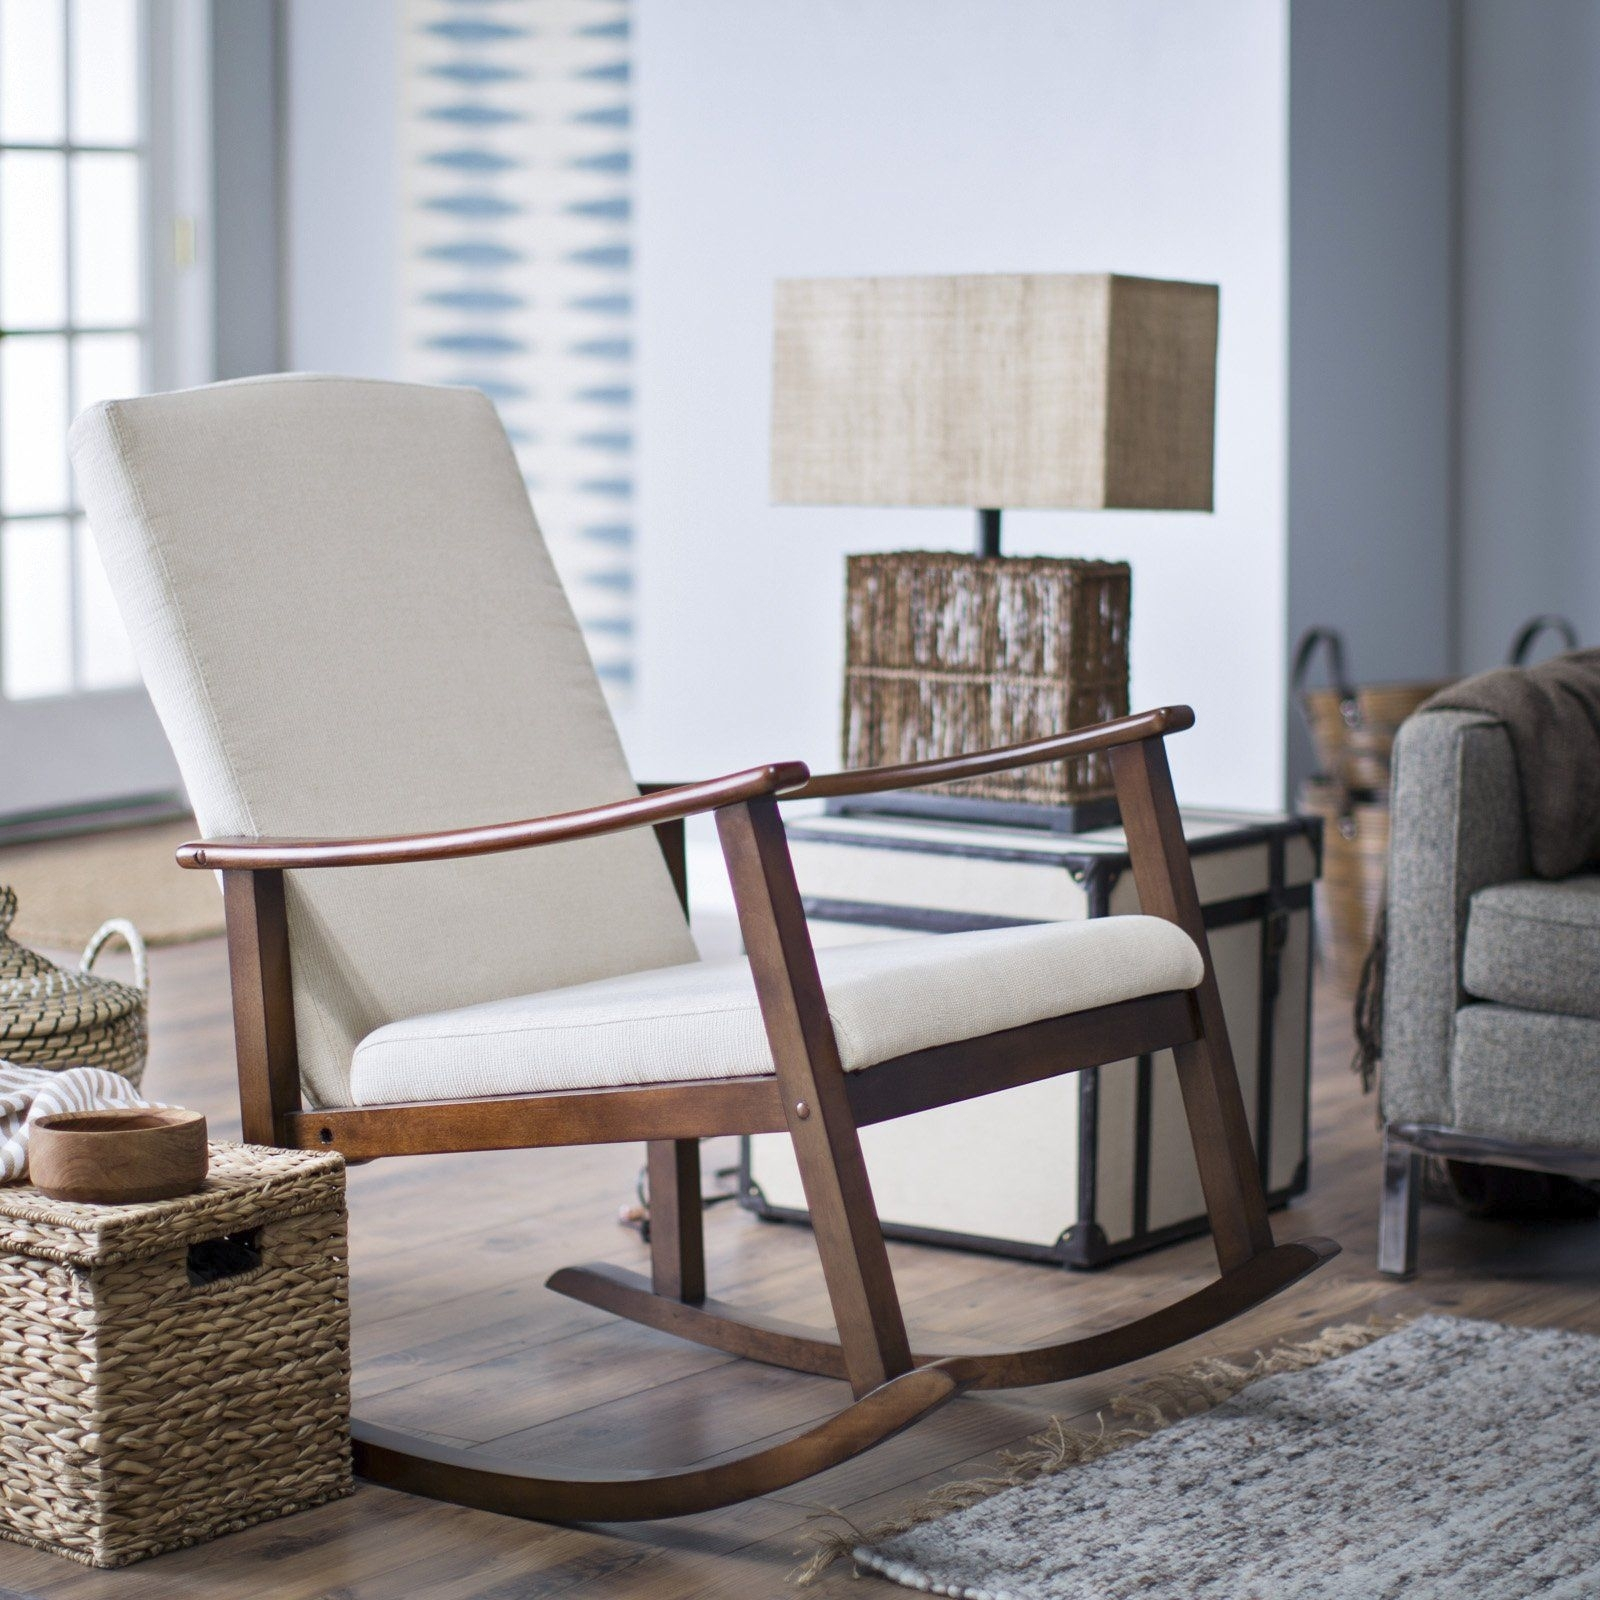 Picture of: Modern Rocking Chair Nursery Ideas On Foter